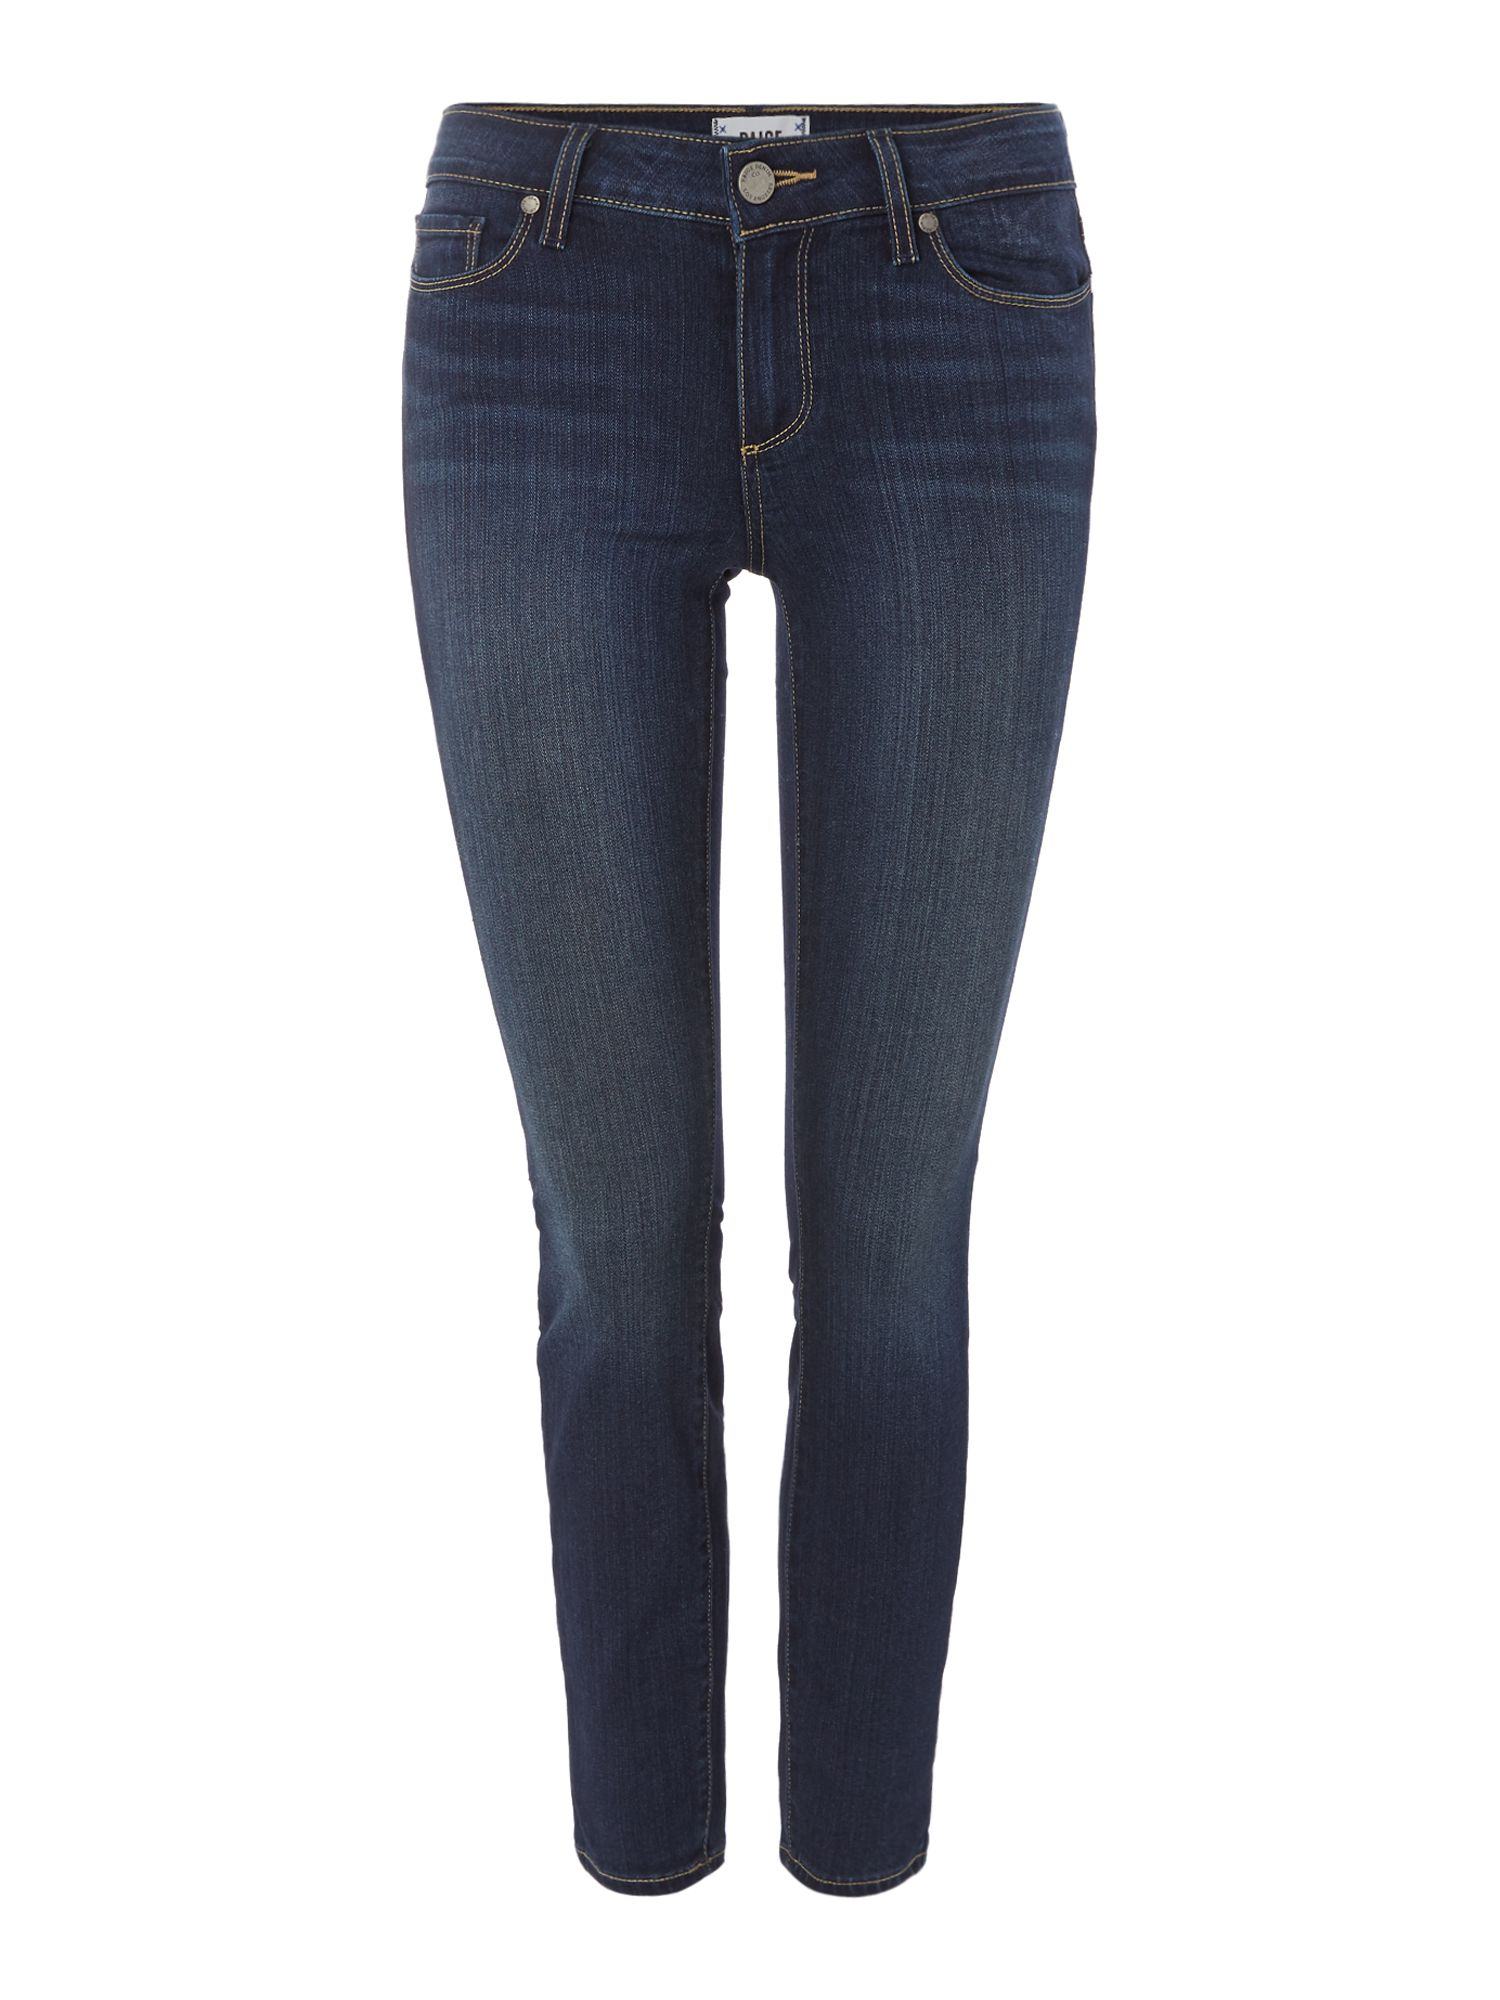 Verdugo Mid Rise Ankle Skinny Jeans In Nottingham, Denim Dark Wash